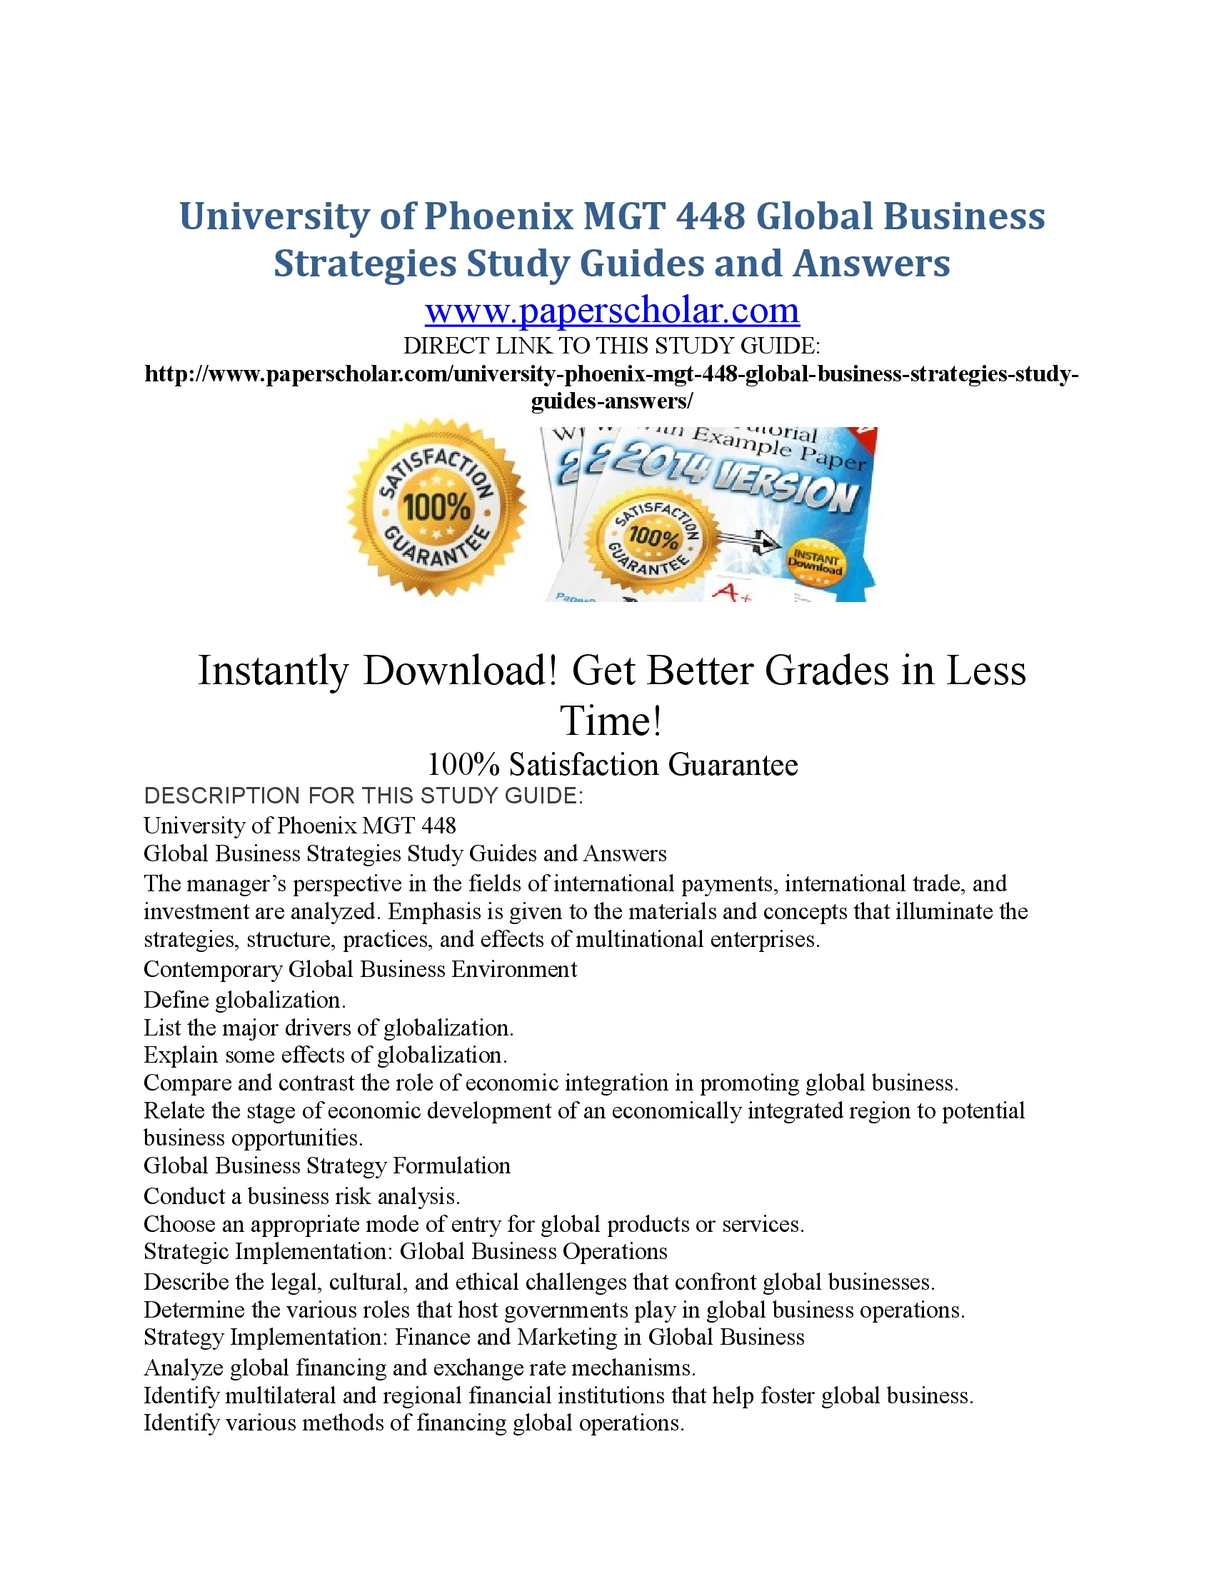 risk analysis paper global business strategies mgt Systems engineering strategies for uncertainty and complexity risk analysis tools, risk management tools, risk tools risk manager mgt001 description.